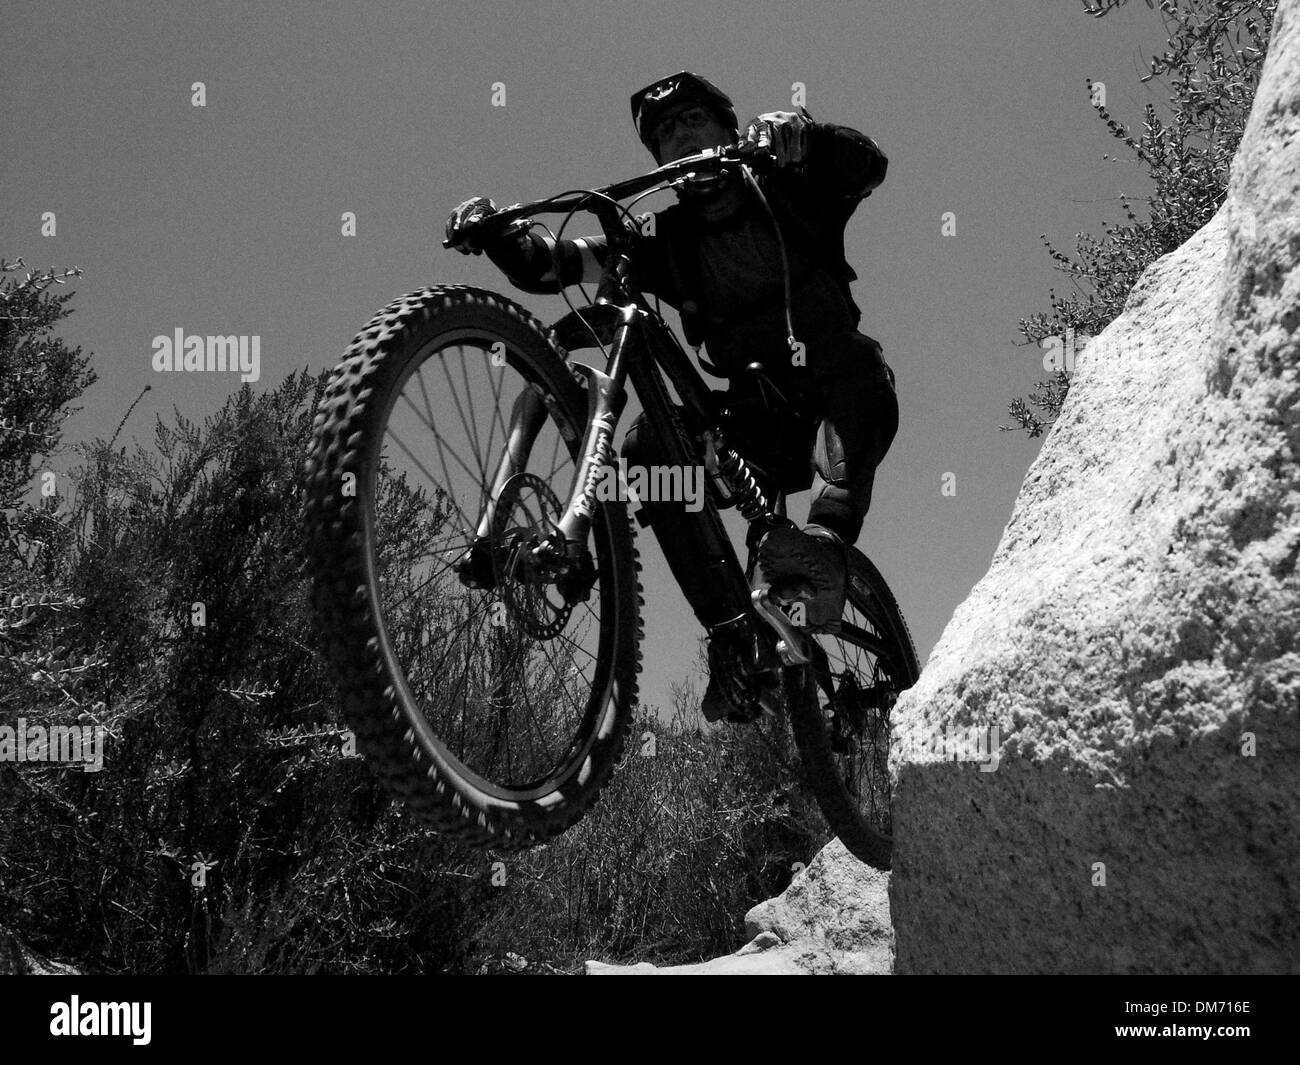 Apr 21, 2005; San Juan Mountains, CA, USA; Mountainbiker takes to the air in the San Juan mountains of southern california. Downhill mtb riding is becoming more extremly popular with X games gravity games and with freeriding the new big thing. Mandatory Credit: Photo by Ruaridh Stewart/ZUMA Press. (©) Copyright 2005 by Ruaridh Stewart - Stock Image